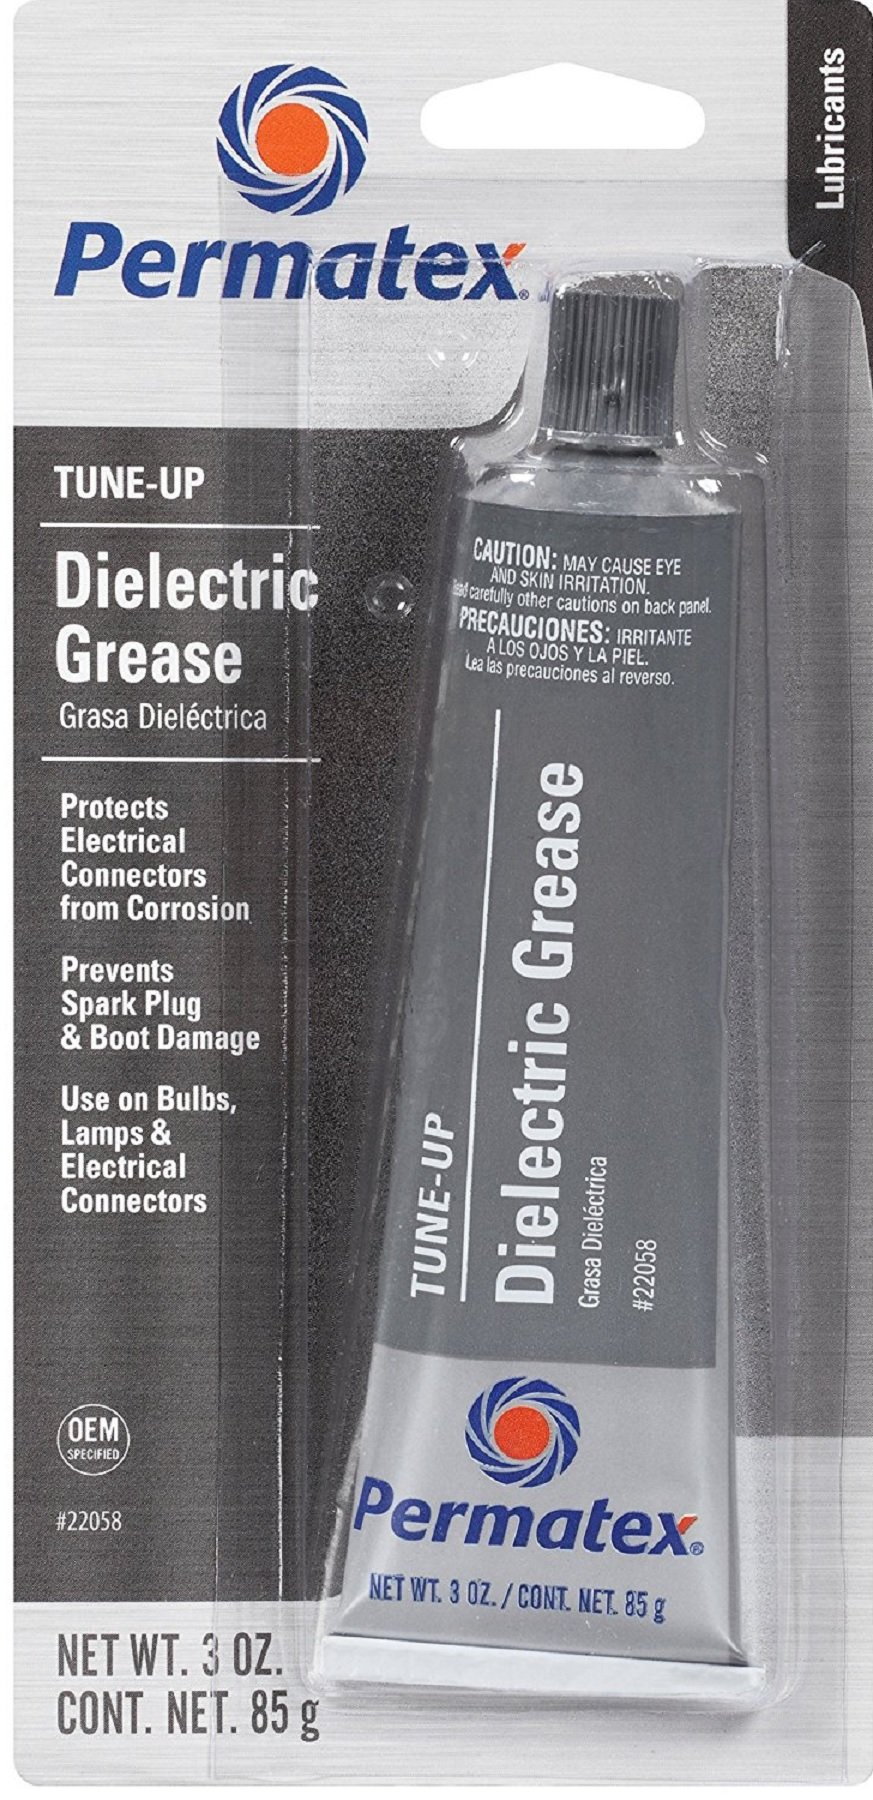 Permatex Inc 22058 6 Pack 3 oz. Dielectric Tune-Up Grease